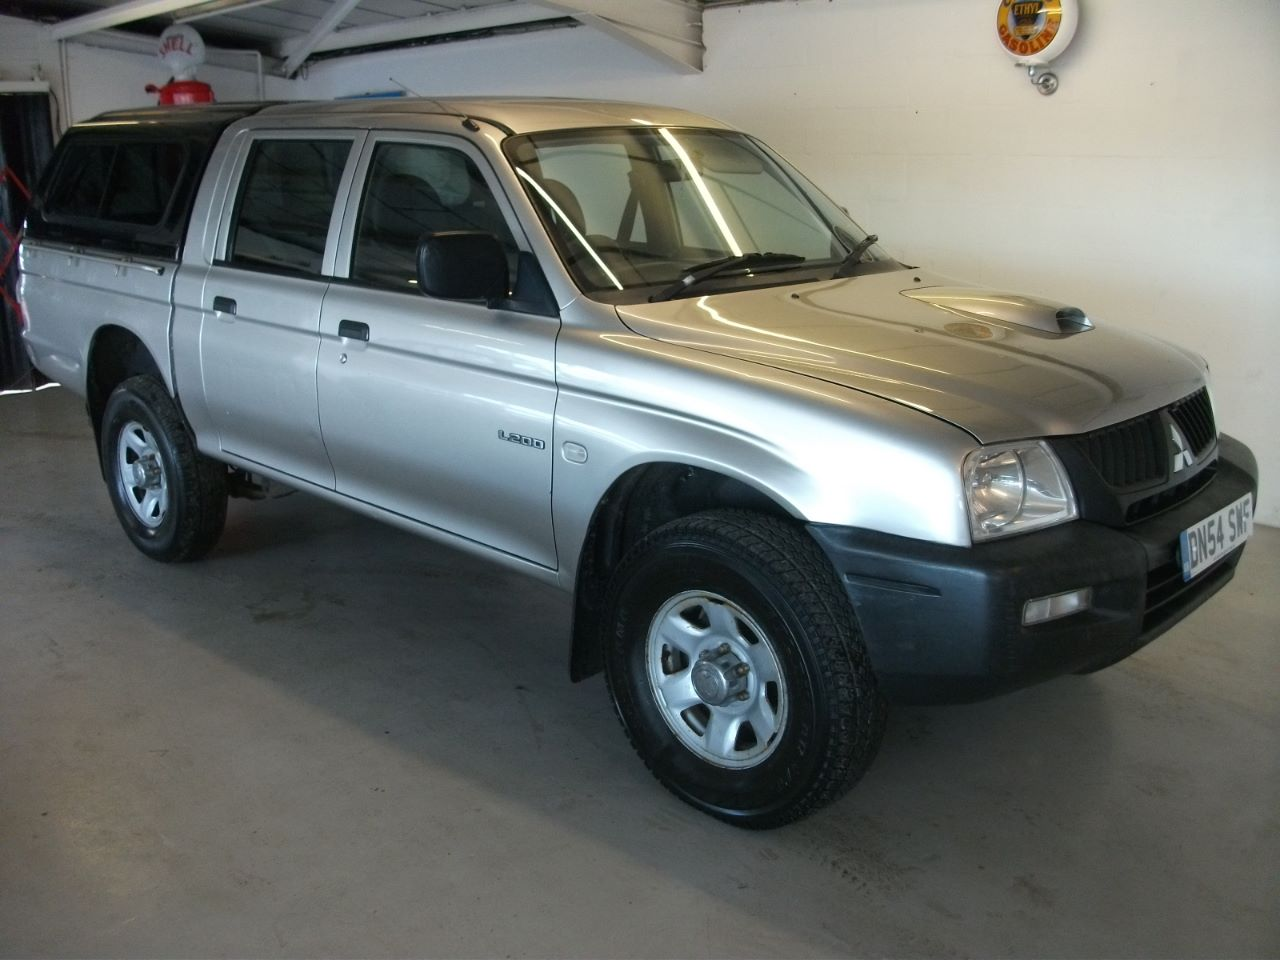 Mitsubishi L200 2.5 4work Pick-up Diesel Silver at Lido Garage Hartlepool